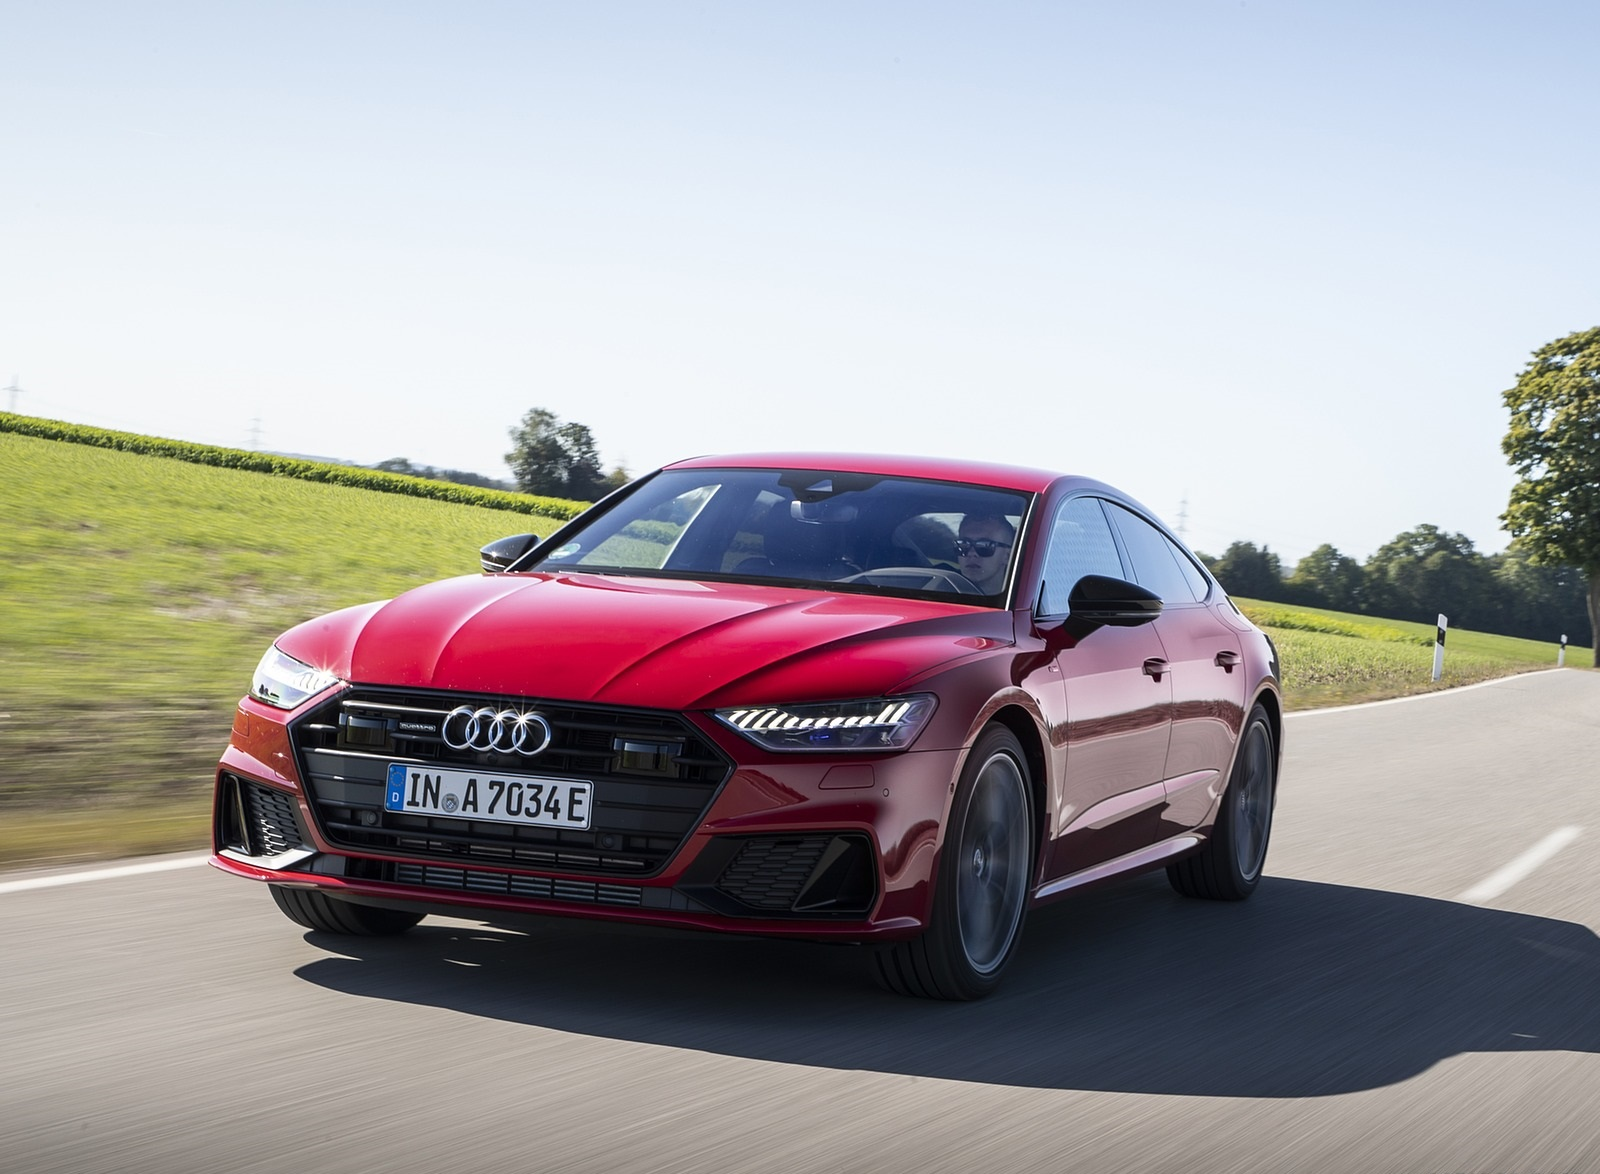 2020 Audi A7 Sportback 55 TFSI e quattro Plug-In Hybrid (Color: Tango Red) Front Three-Quarter Wallpapers (1)